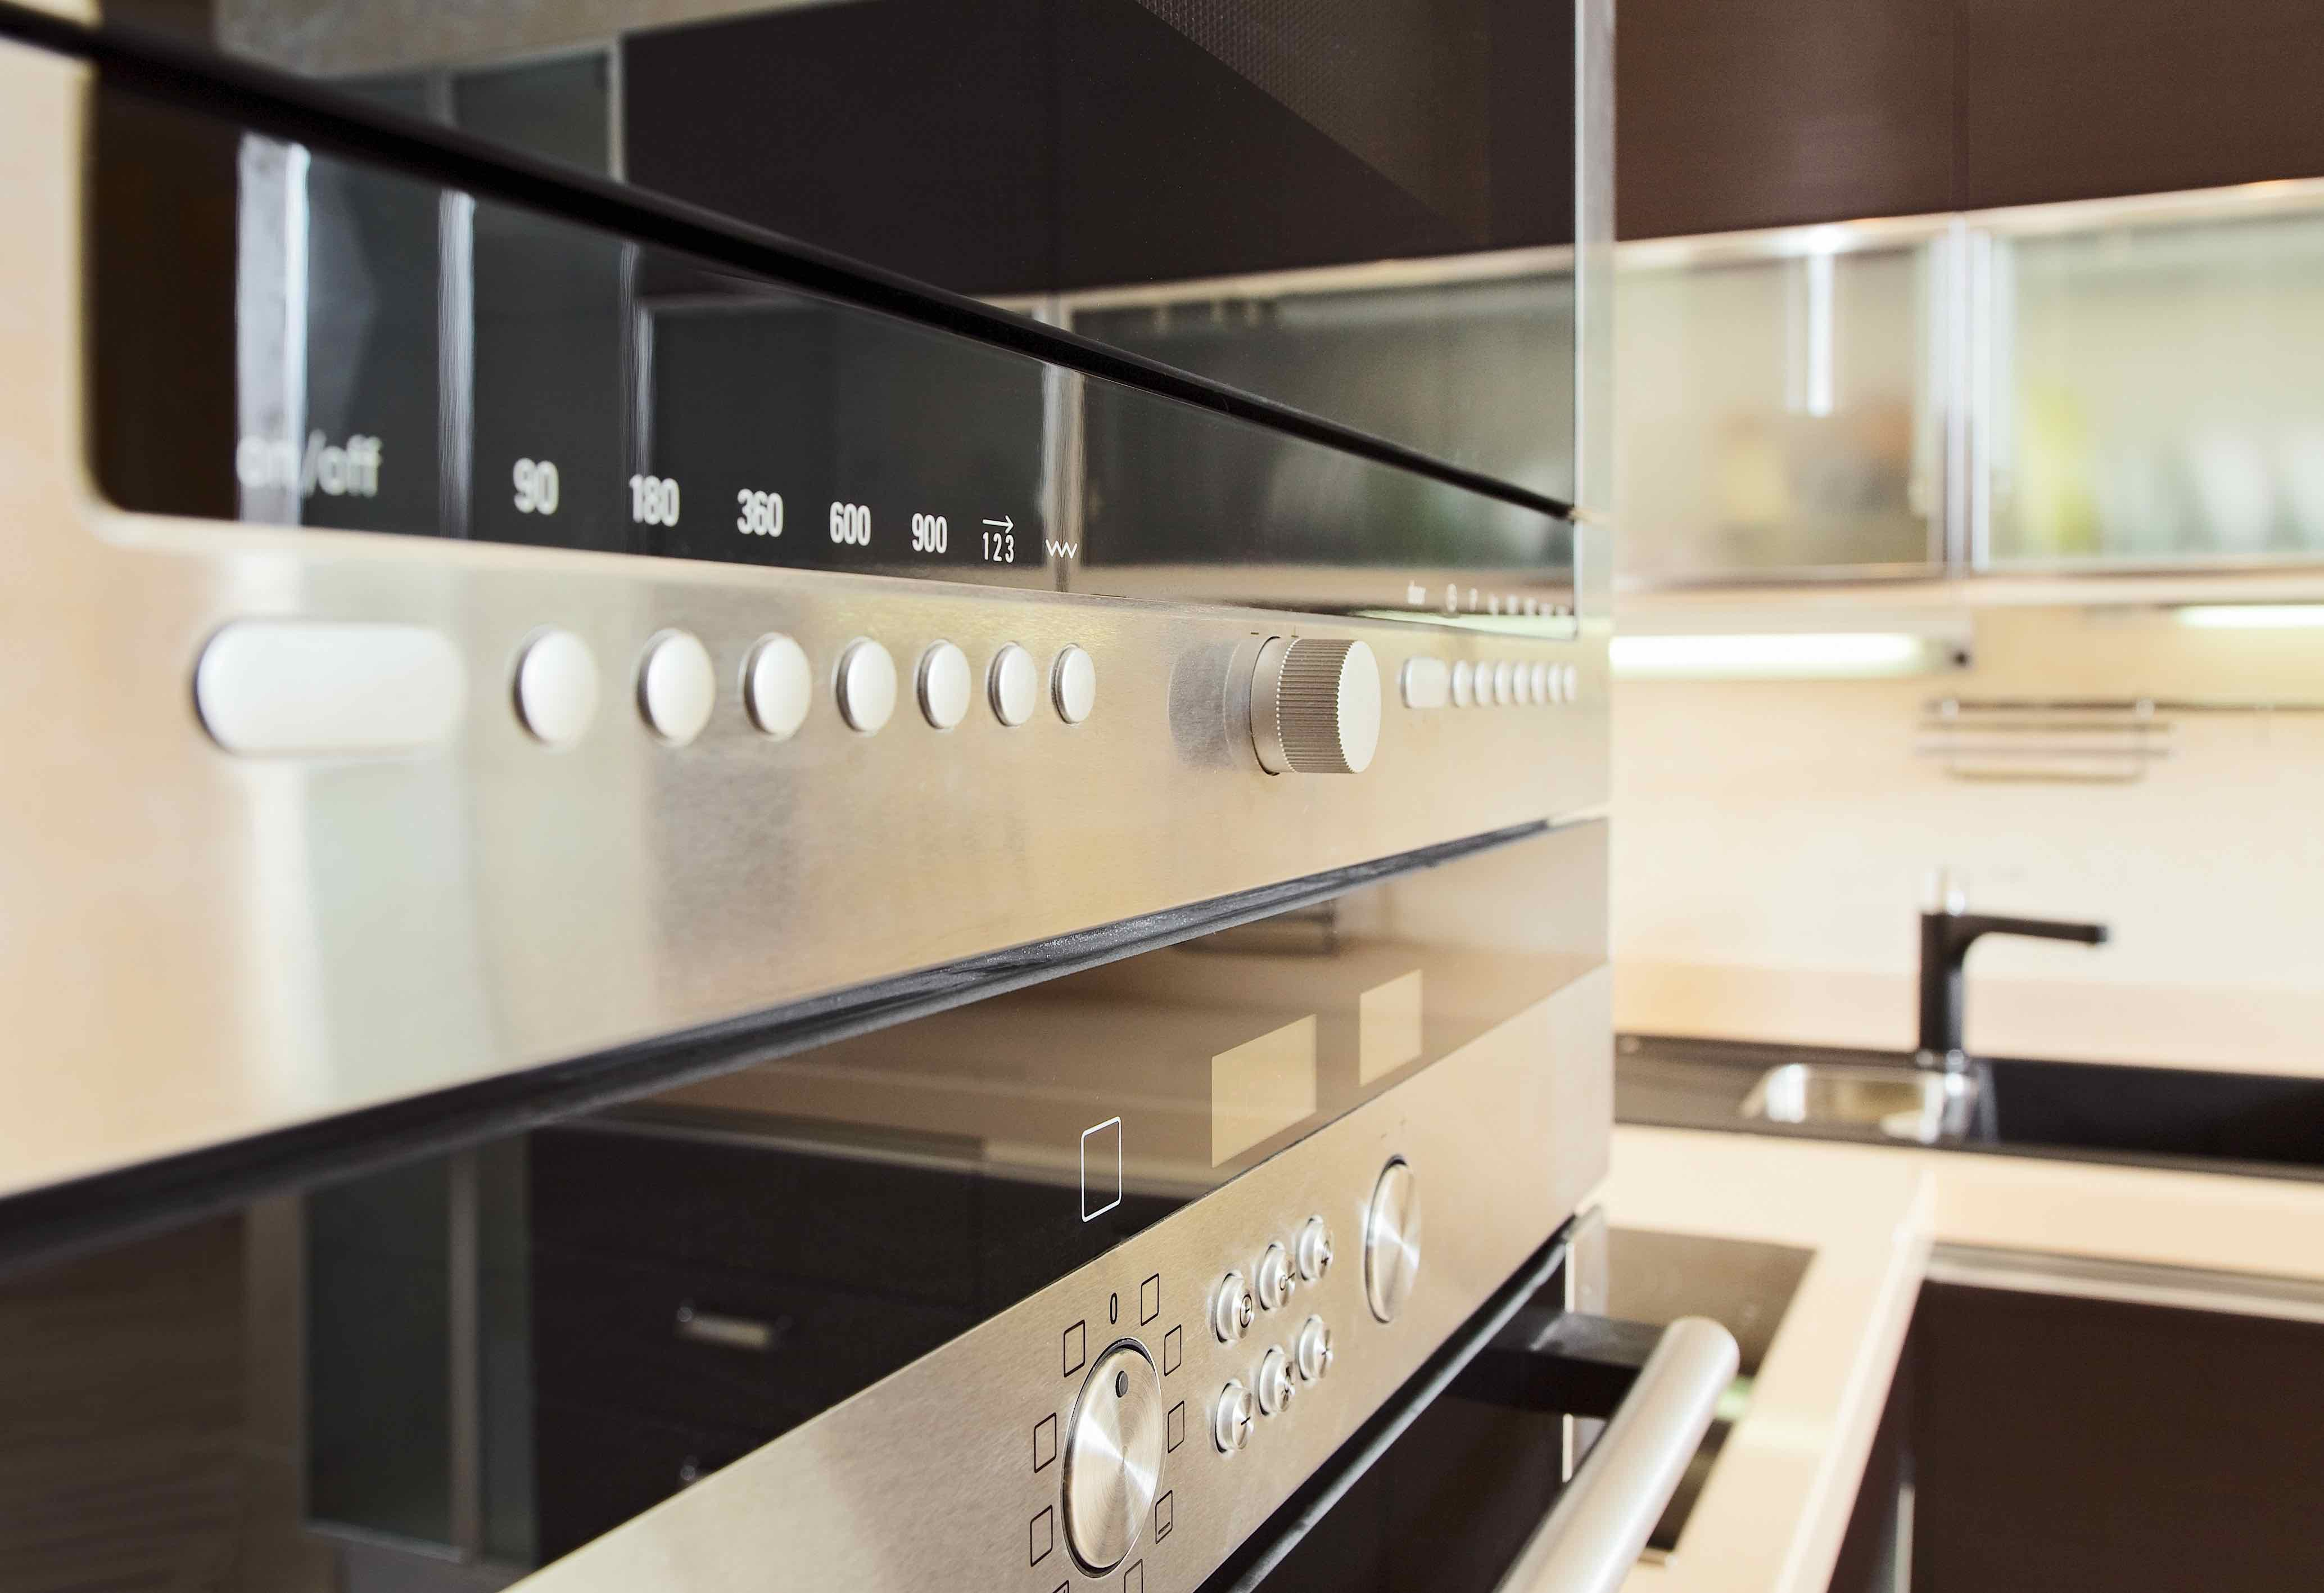 Warming drawer kitchen trends